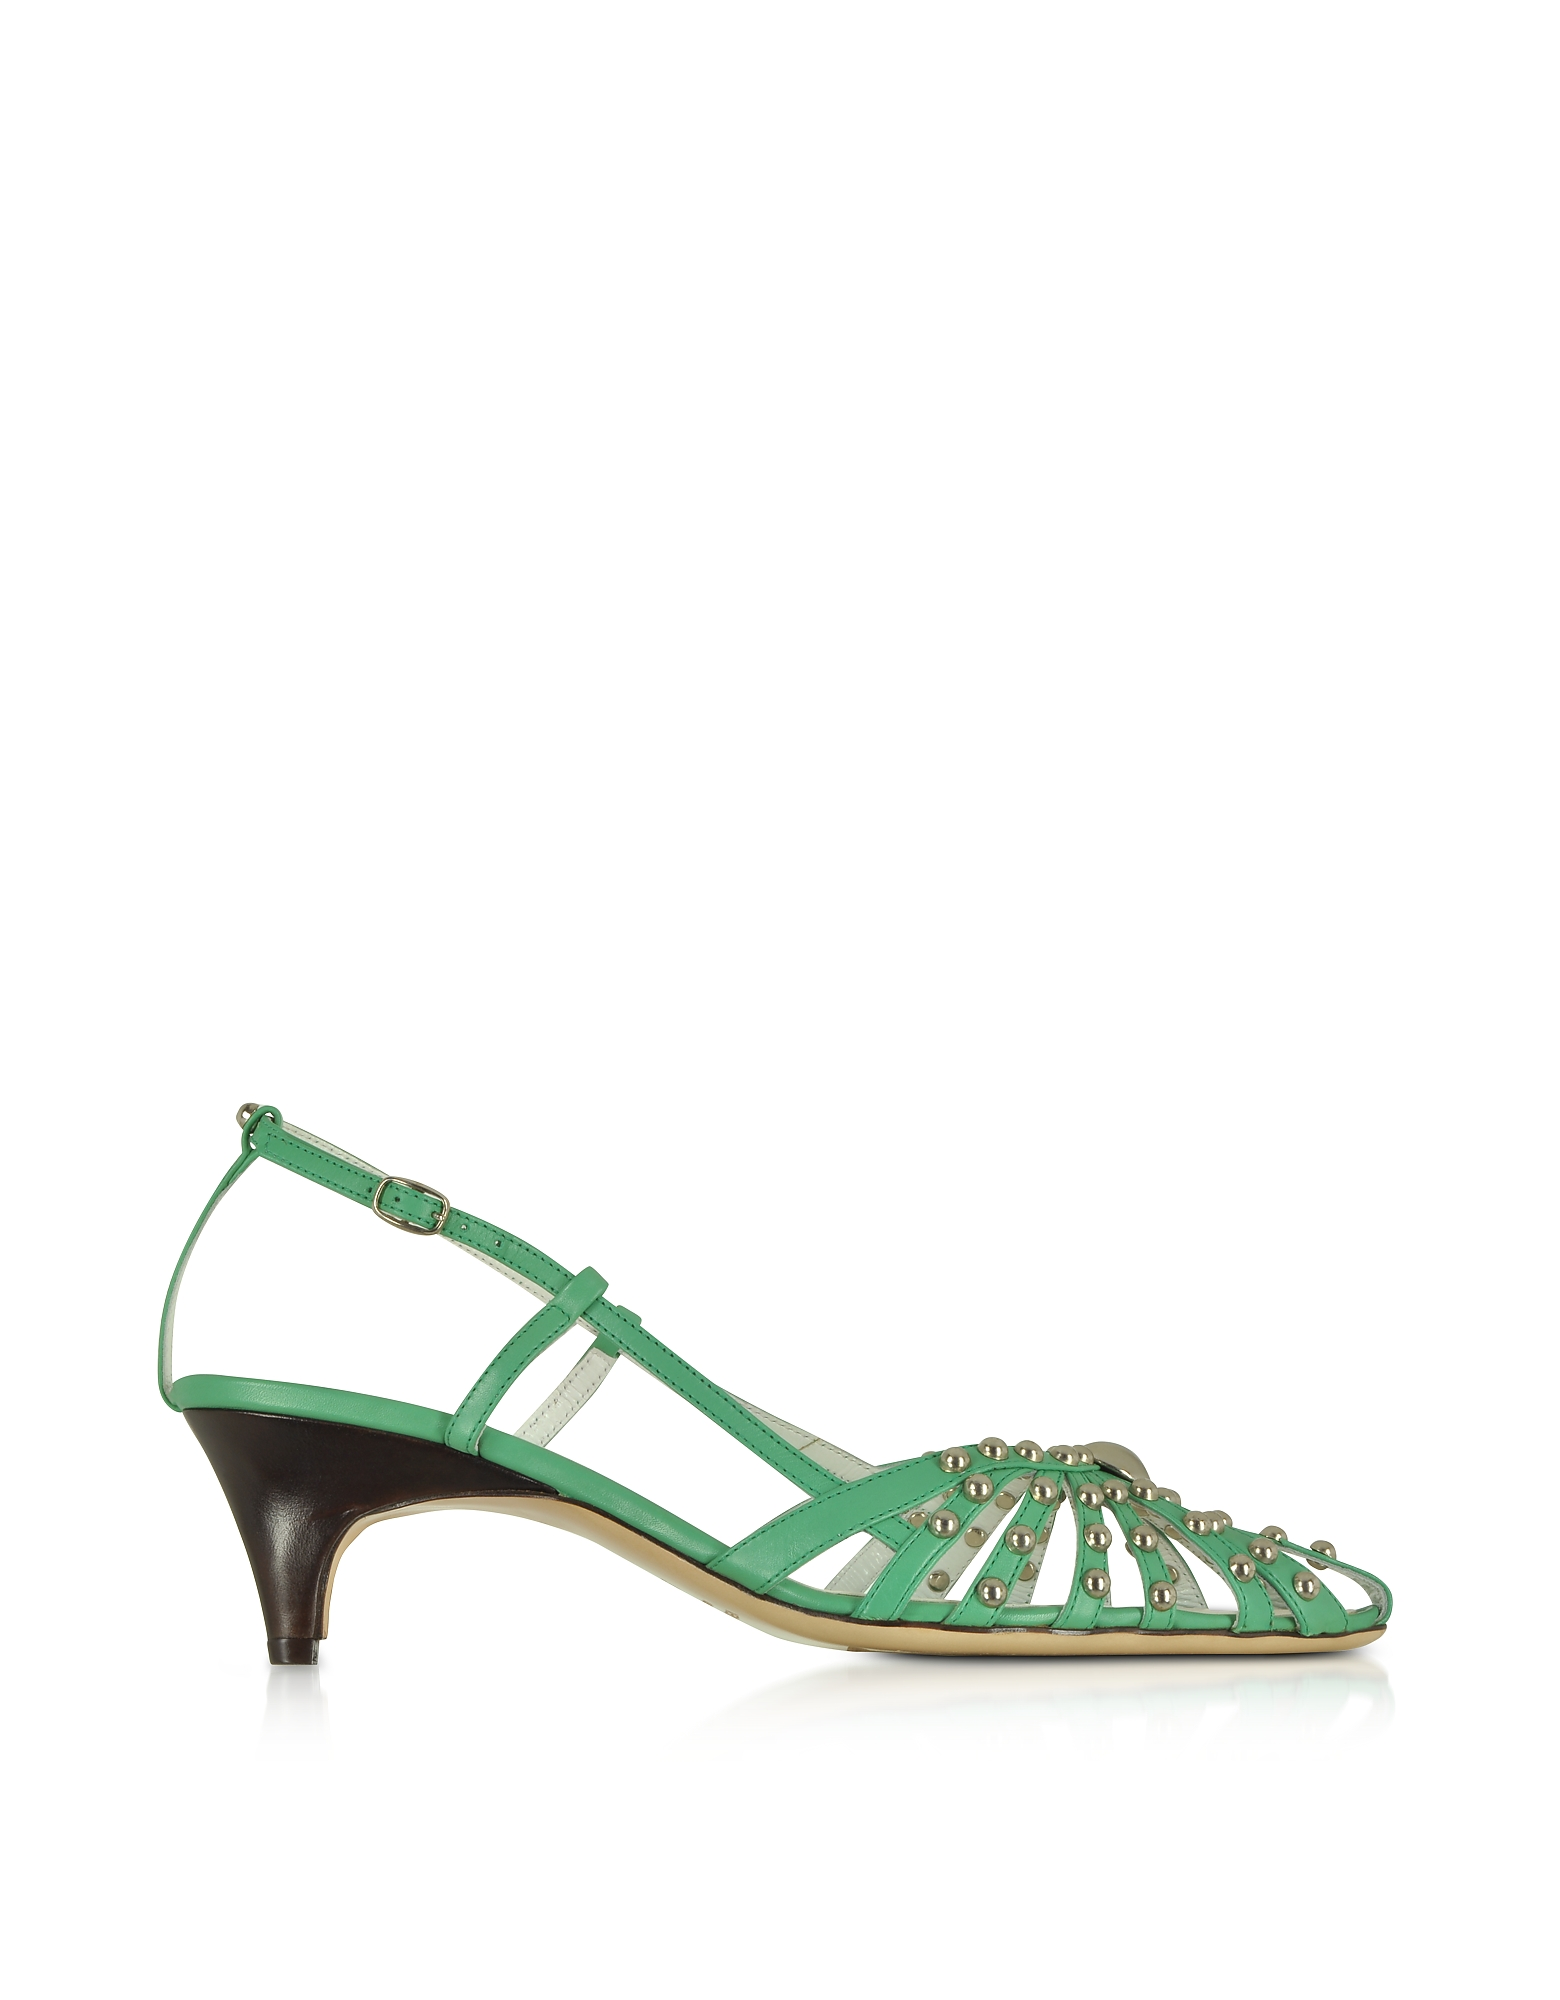 Image of Amaltea Designer Shoes, Mint Studded Strappy Leather Pump Shoes